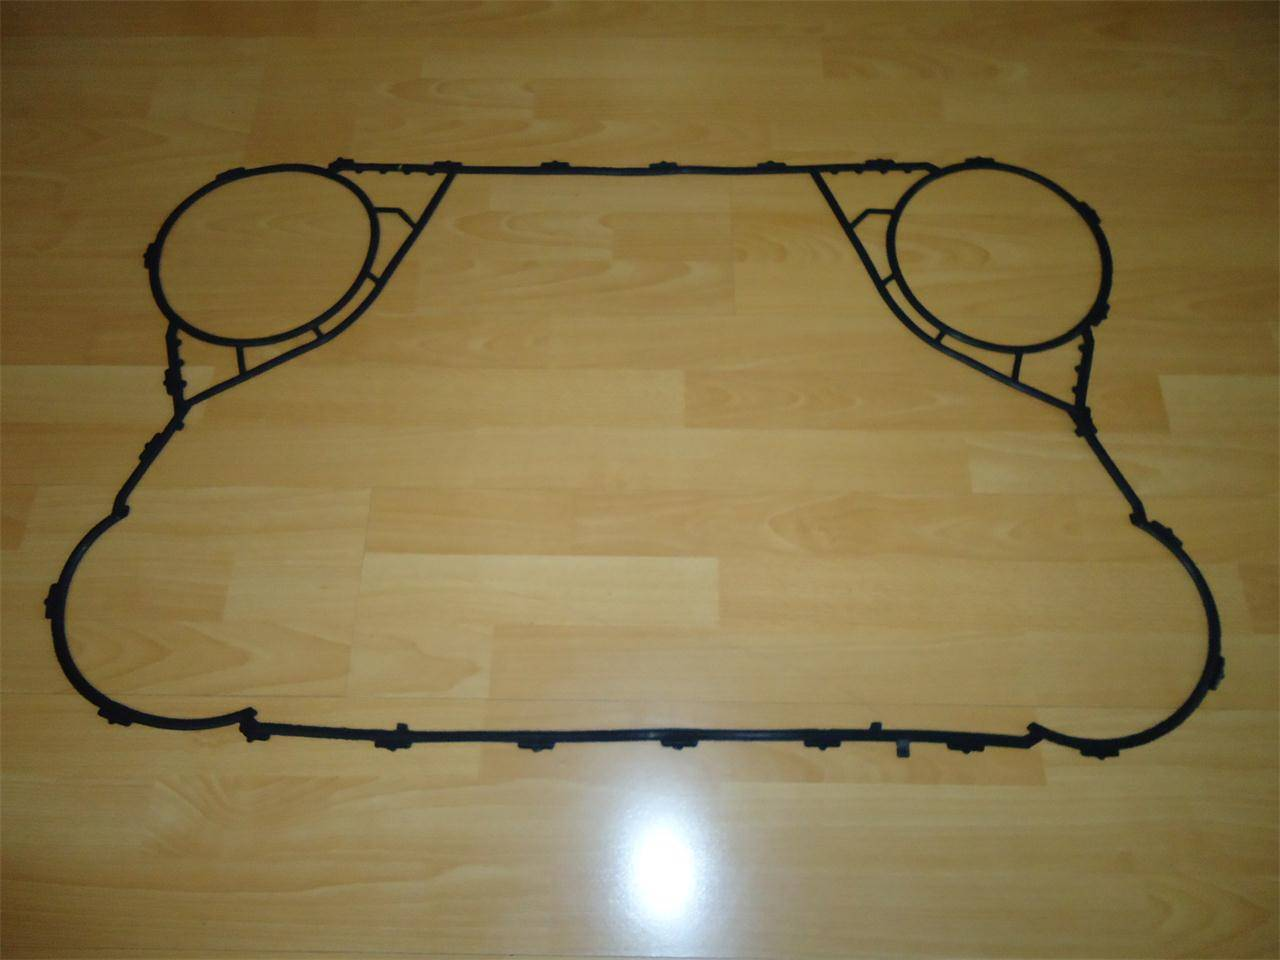 Funke FP405 gasket for plate heat exchanger